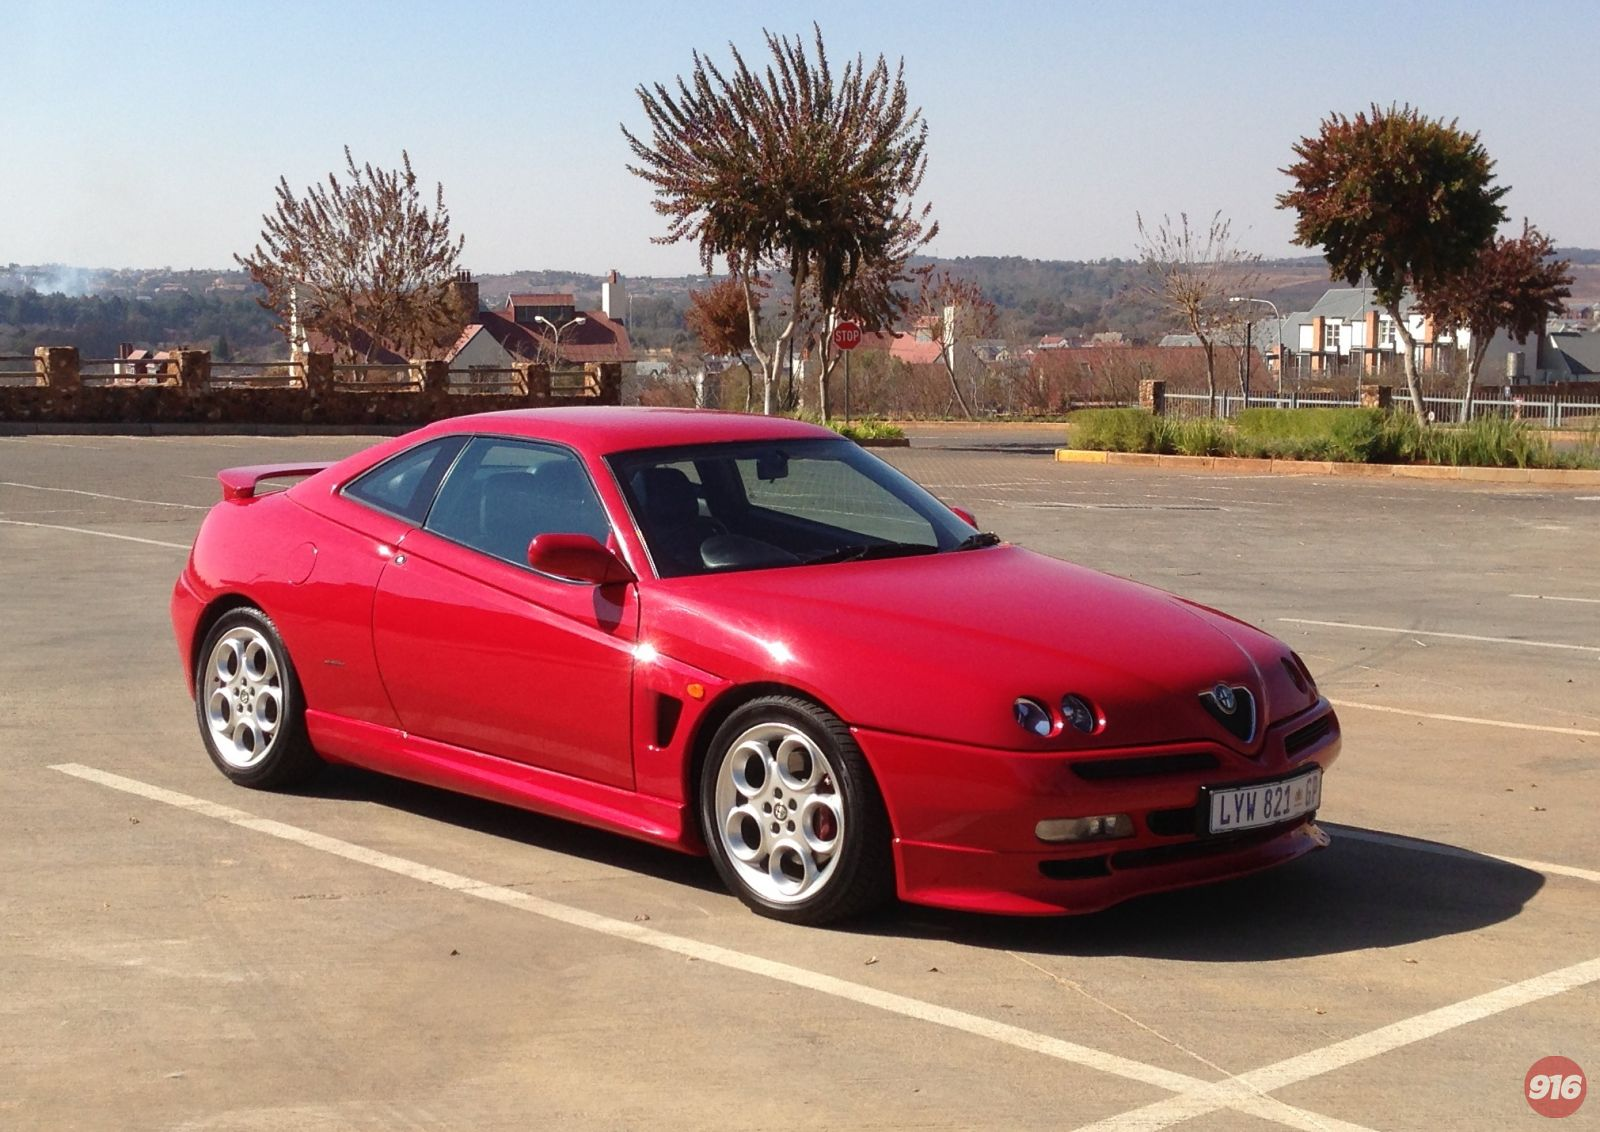 My 916 GTV Cup look alike front